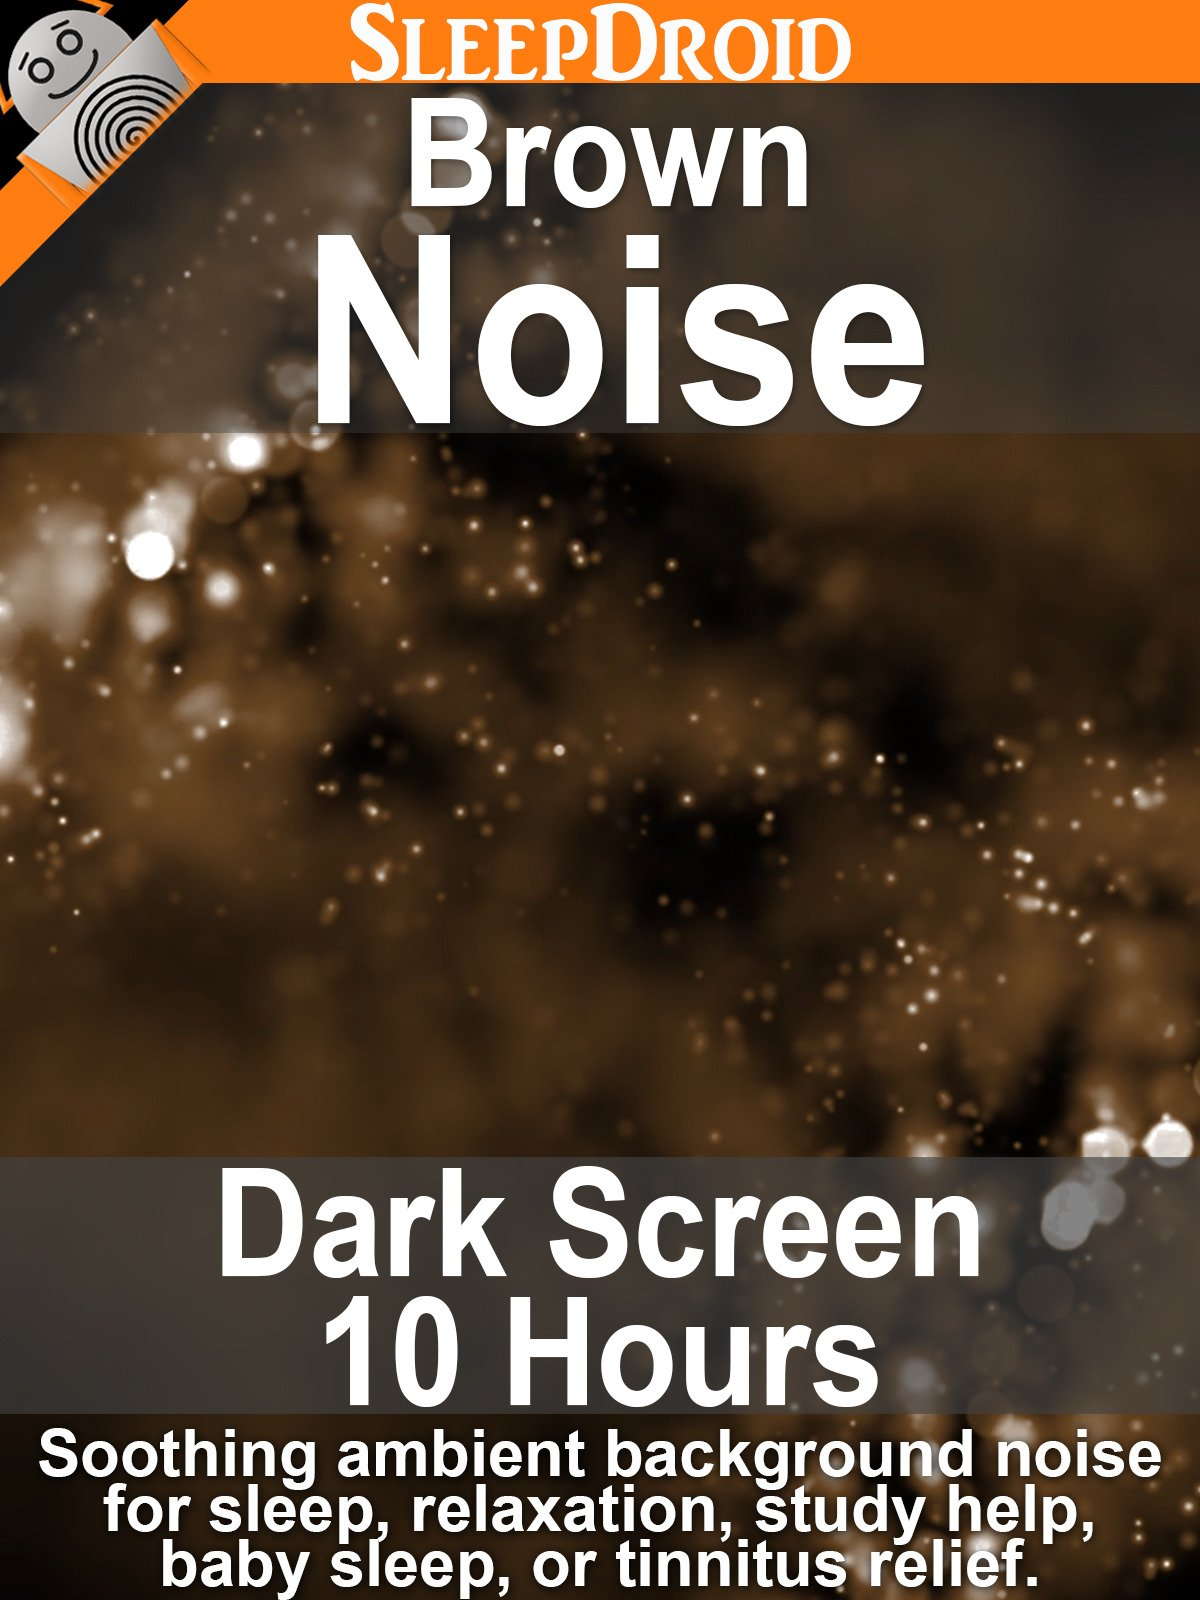 Brown Noise, Dark Screen 10 Hours: Soothing Ambient Background Noise for Sleep, Relaxation, Study Help, Baby Sleep, or Tinnitus Relief